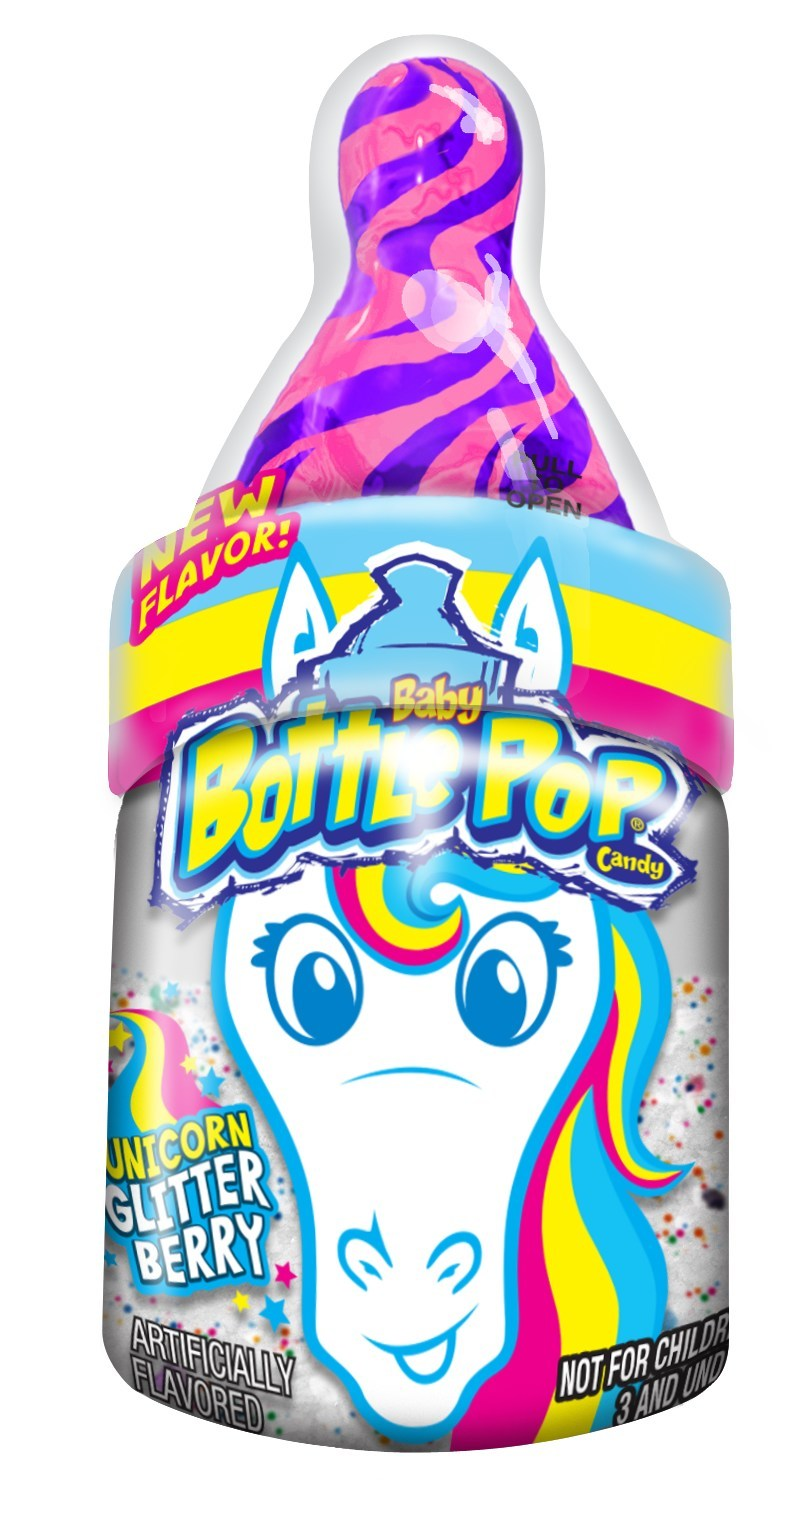 Bazooka Candy Brands® Dazzles The Candy Category With Edible Glitter Powder In Newest Baby Bottle Pop® Flavor: Unicorn Glitter Berry